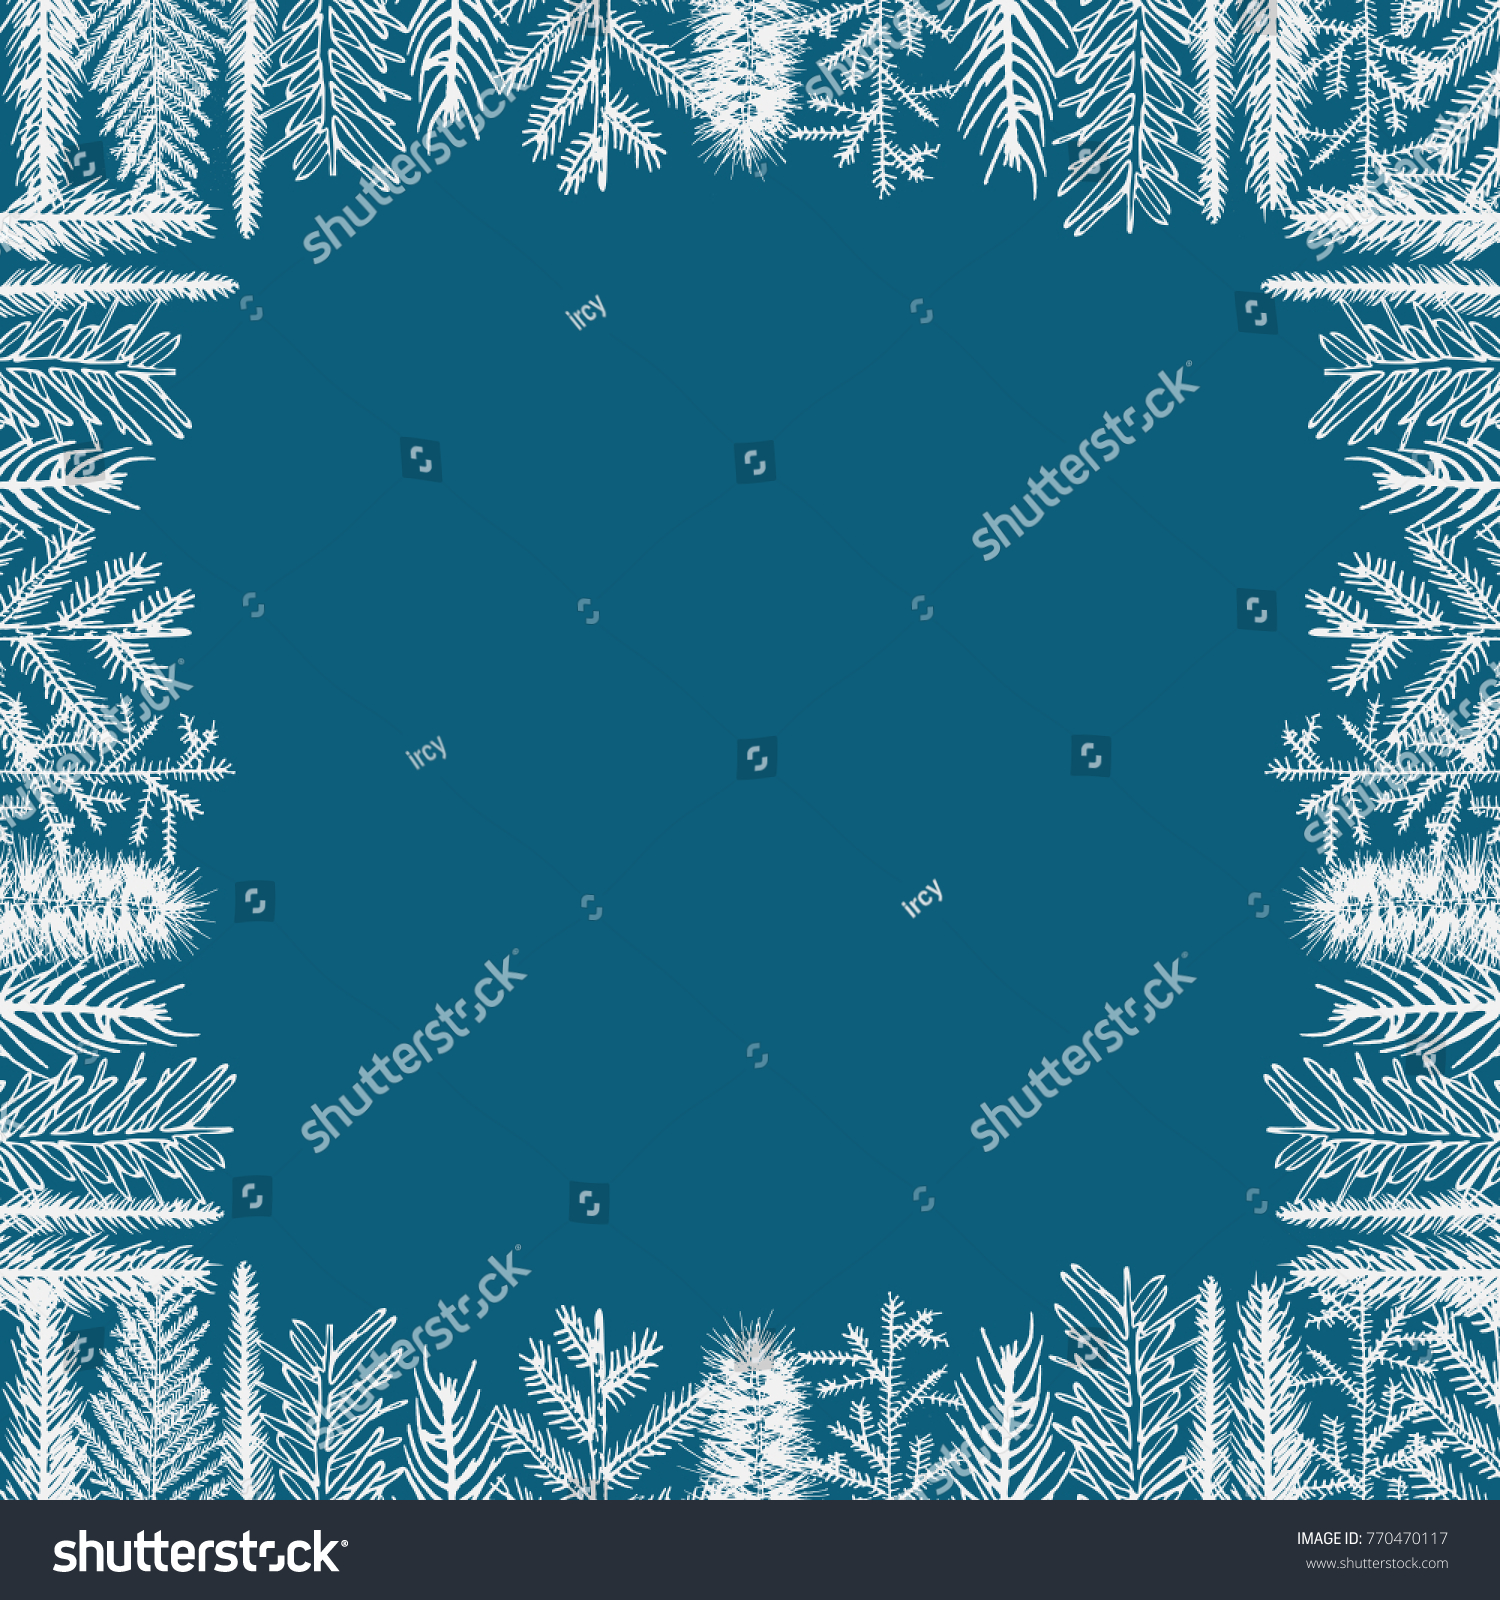 Christmas vector framework holiday greeting card stock vector christmas vector framework holiday greeting card background template of fir pine tree branch frame kristyandbryce Choice Image